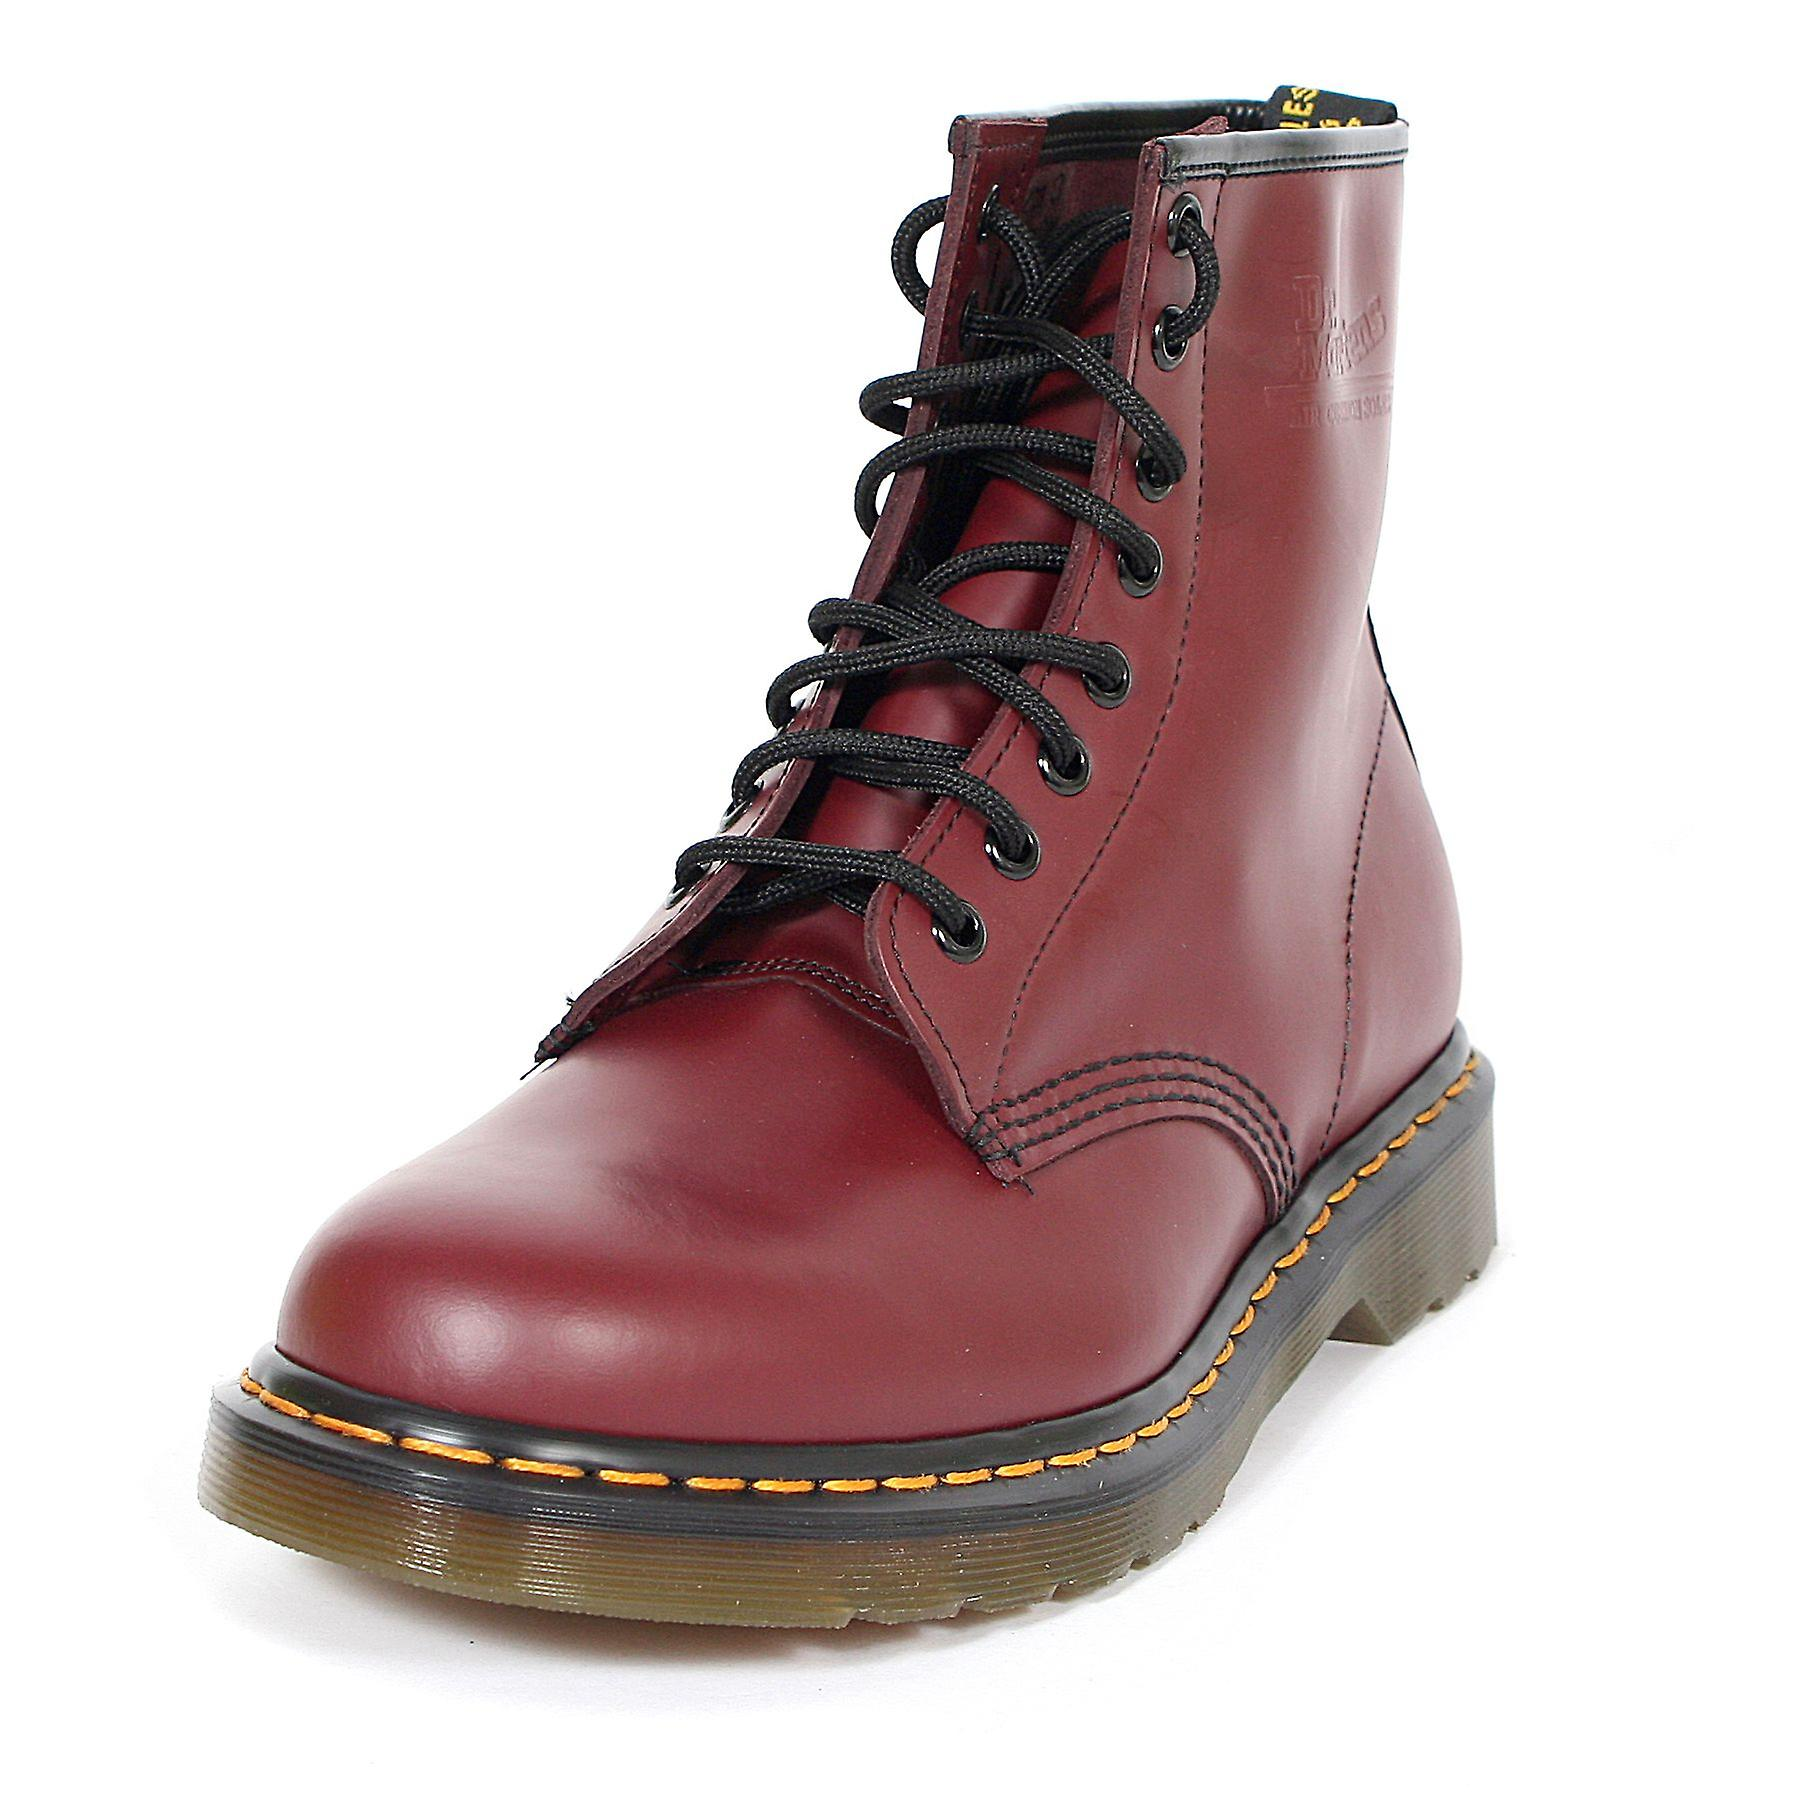 62d51f766f66 Dr Martens Unisex 1460 8 Eyelet Smooth Leather Lace-Up Boot Cherry ...